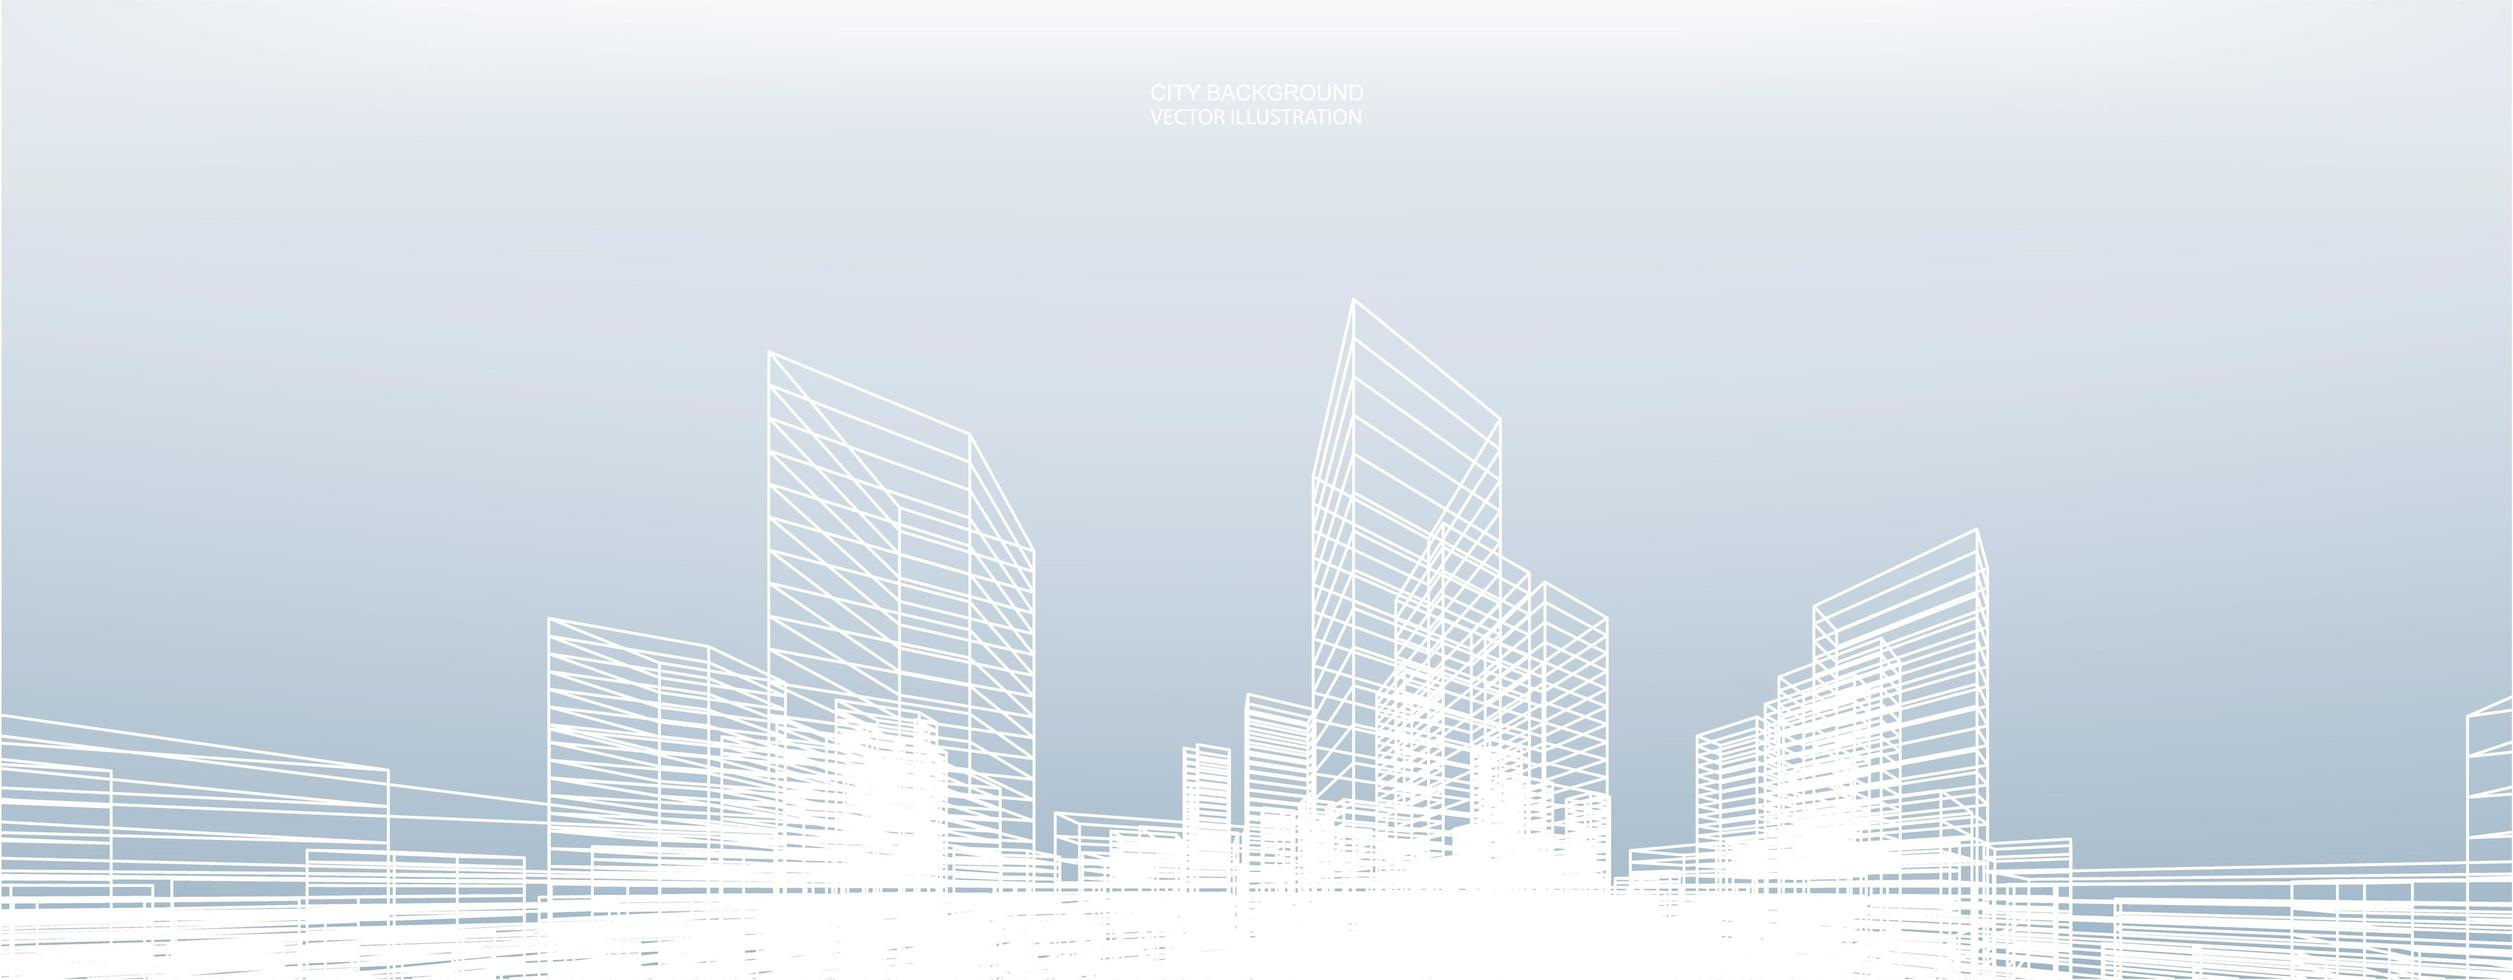 City clipart background image, City background image Transparent FREE for  download on WebStockReview 2020